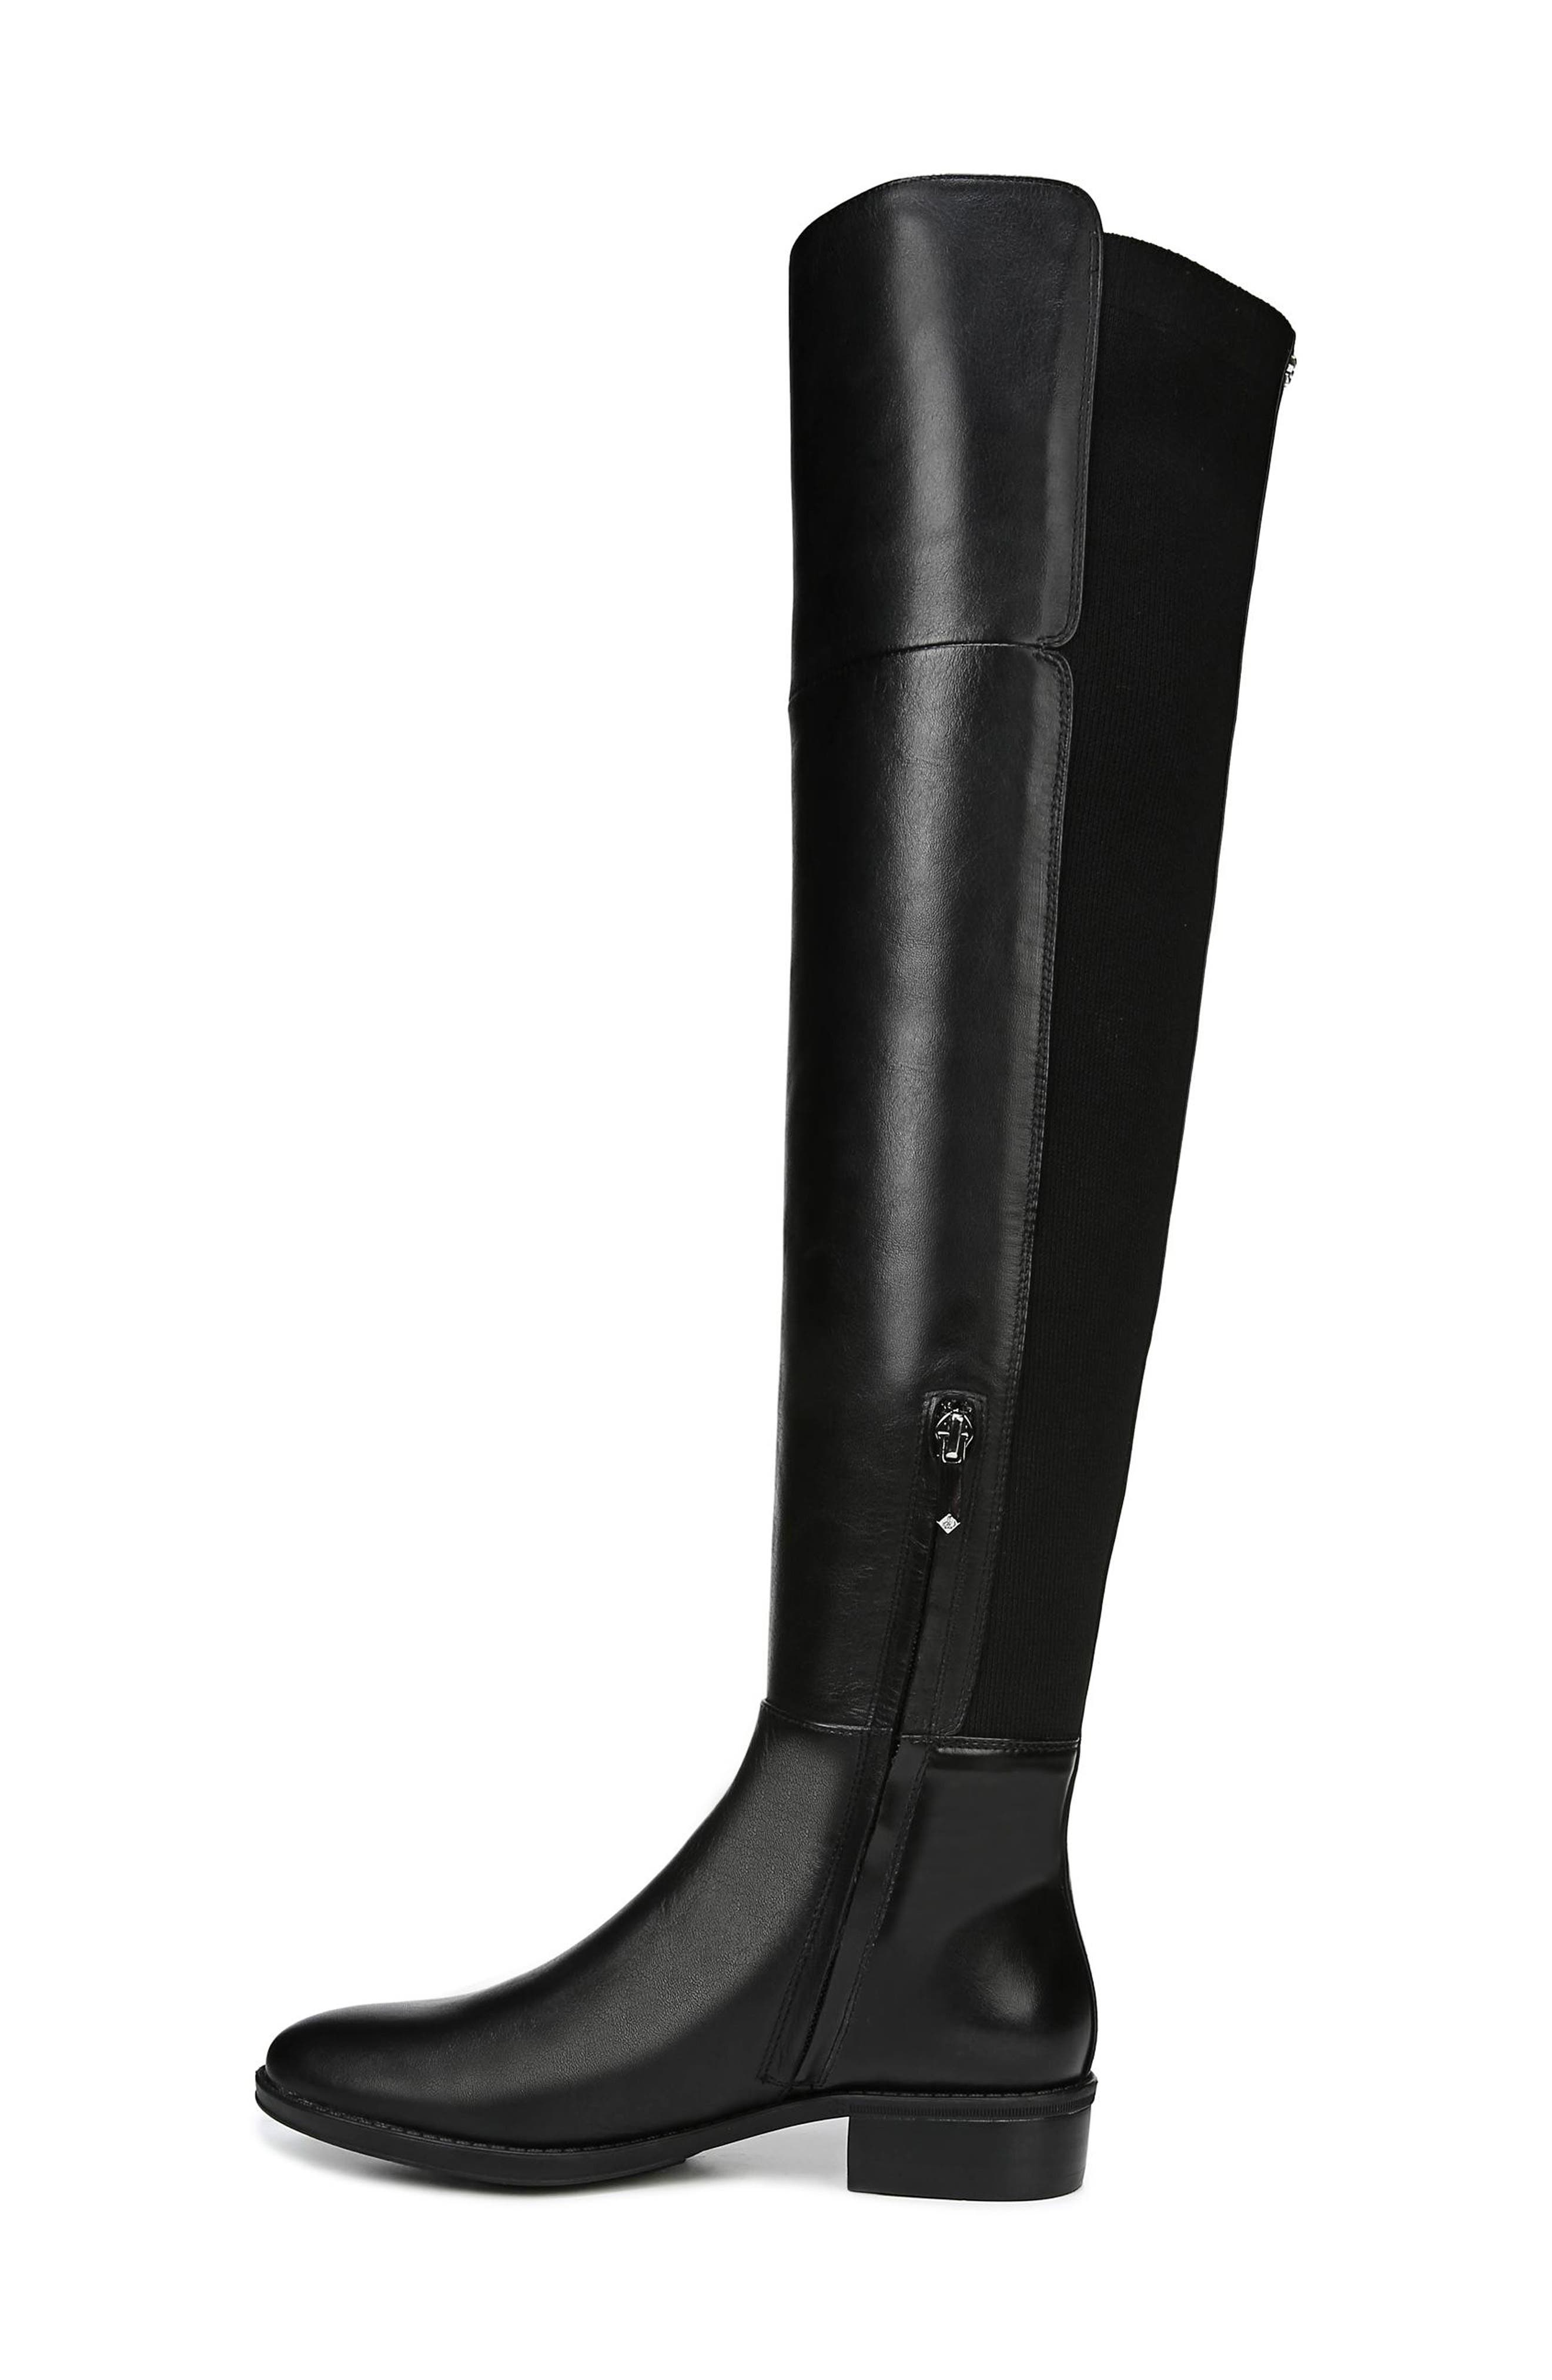 Pam Over the Knee Boot,                             Alternate thumbnail 8, color,                             BLACK LEATHER